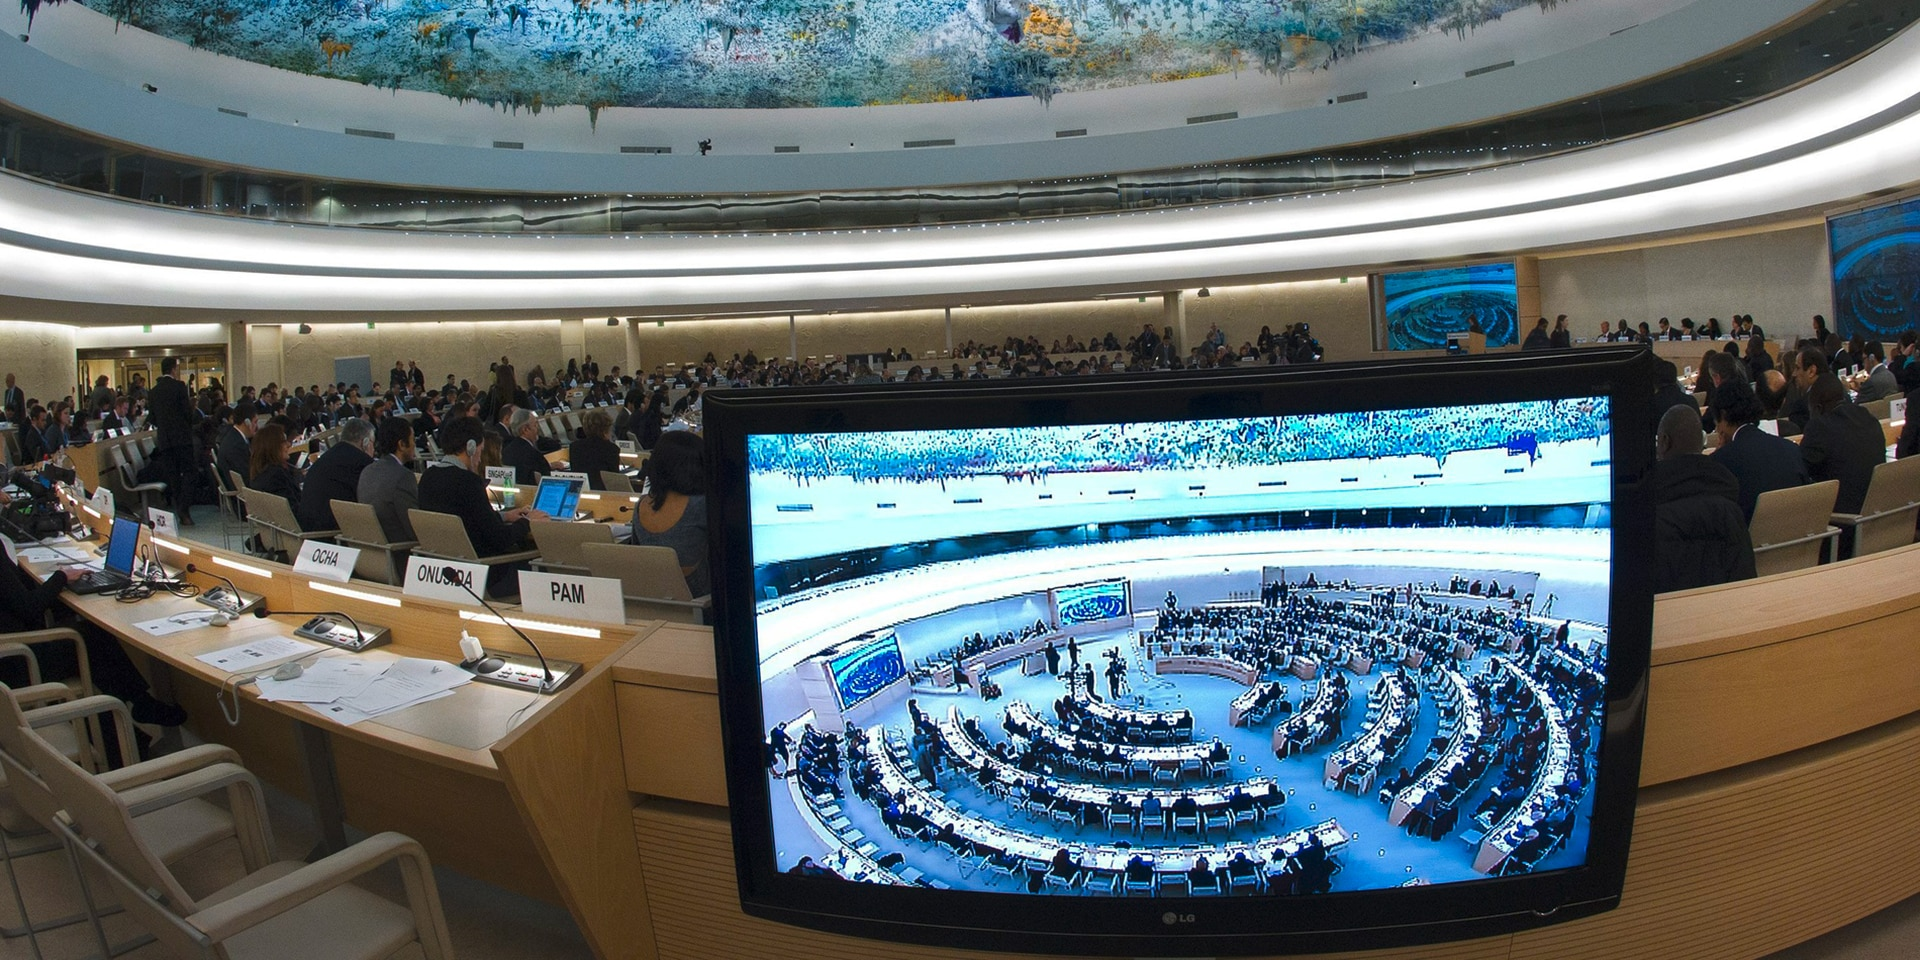 The Human Rights and Alliance of Civilizations Room at the United Nations in Geneva, where the Human Rights Council convenes. In the foreground, a screen showing footage of the conference room.